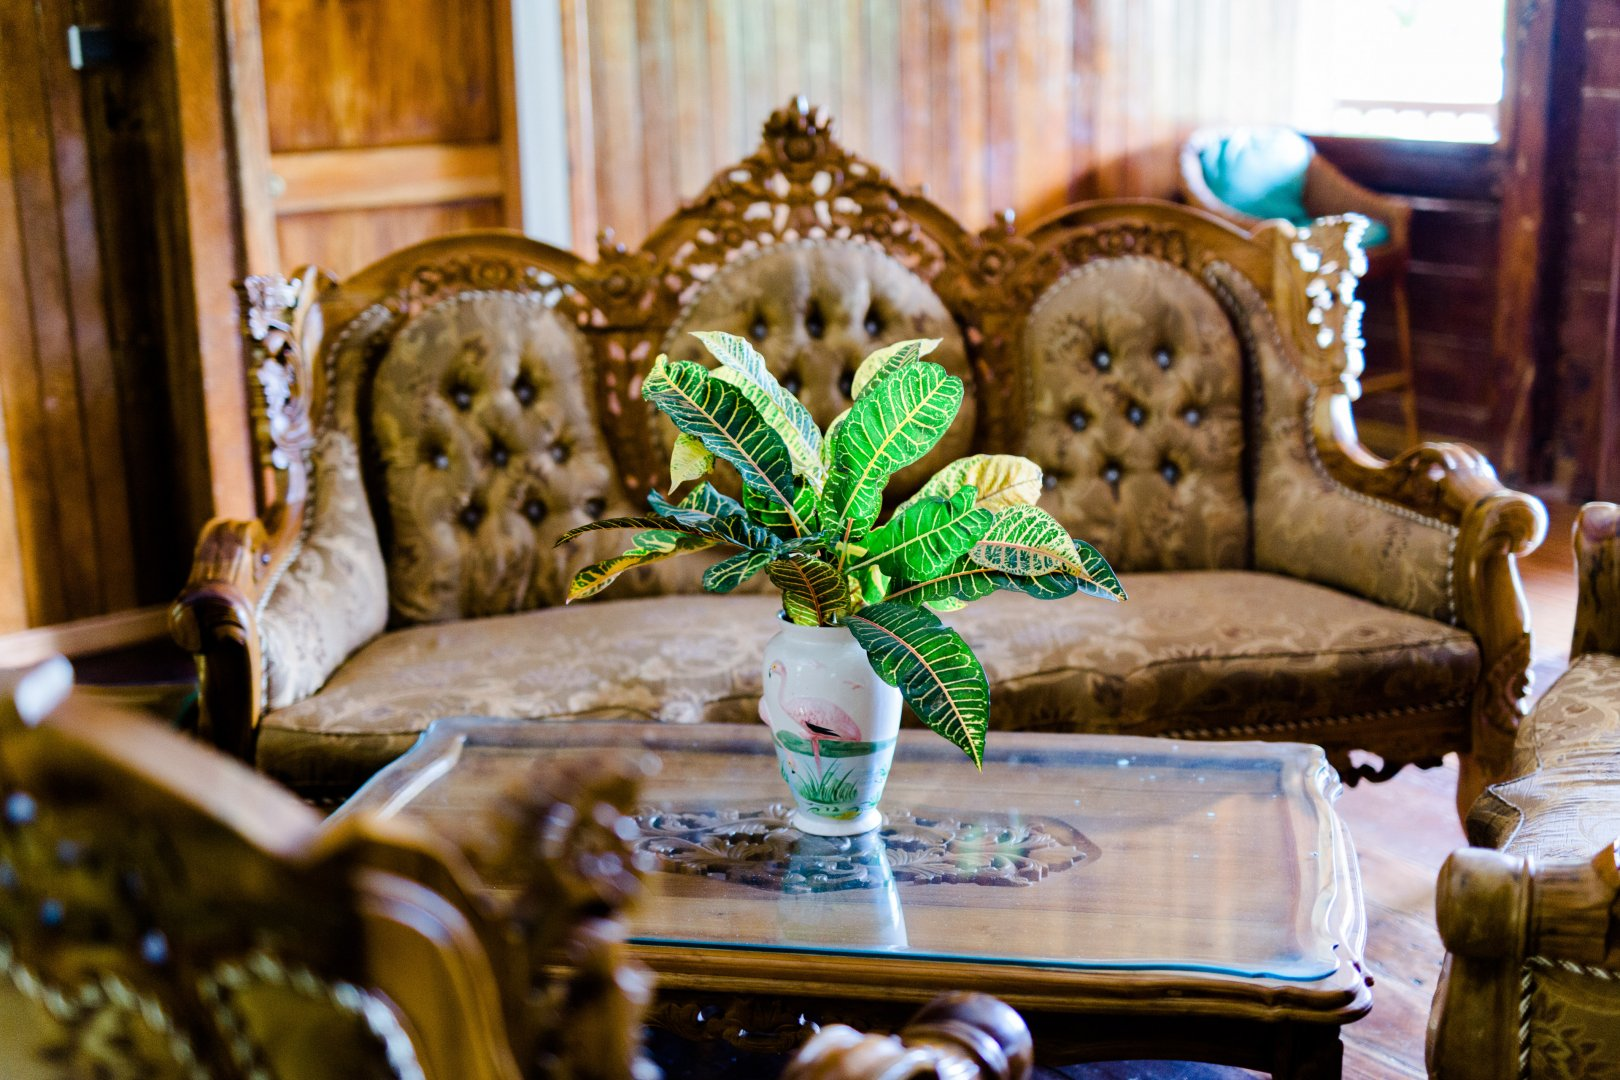 Furniture Green Room Couch Living room Chair Interior design Turquoise Table Classic Loveseat House Architecture Plant Still life Wood Home Antique Flower